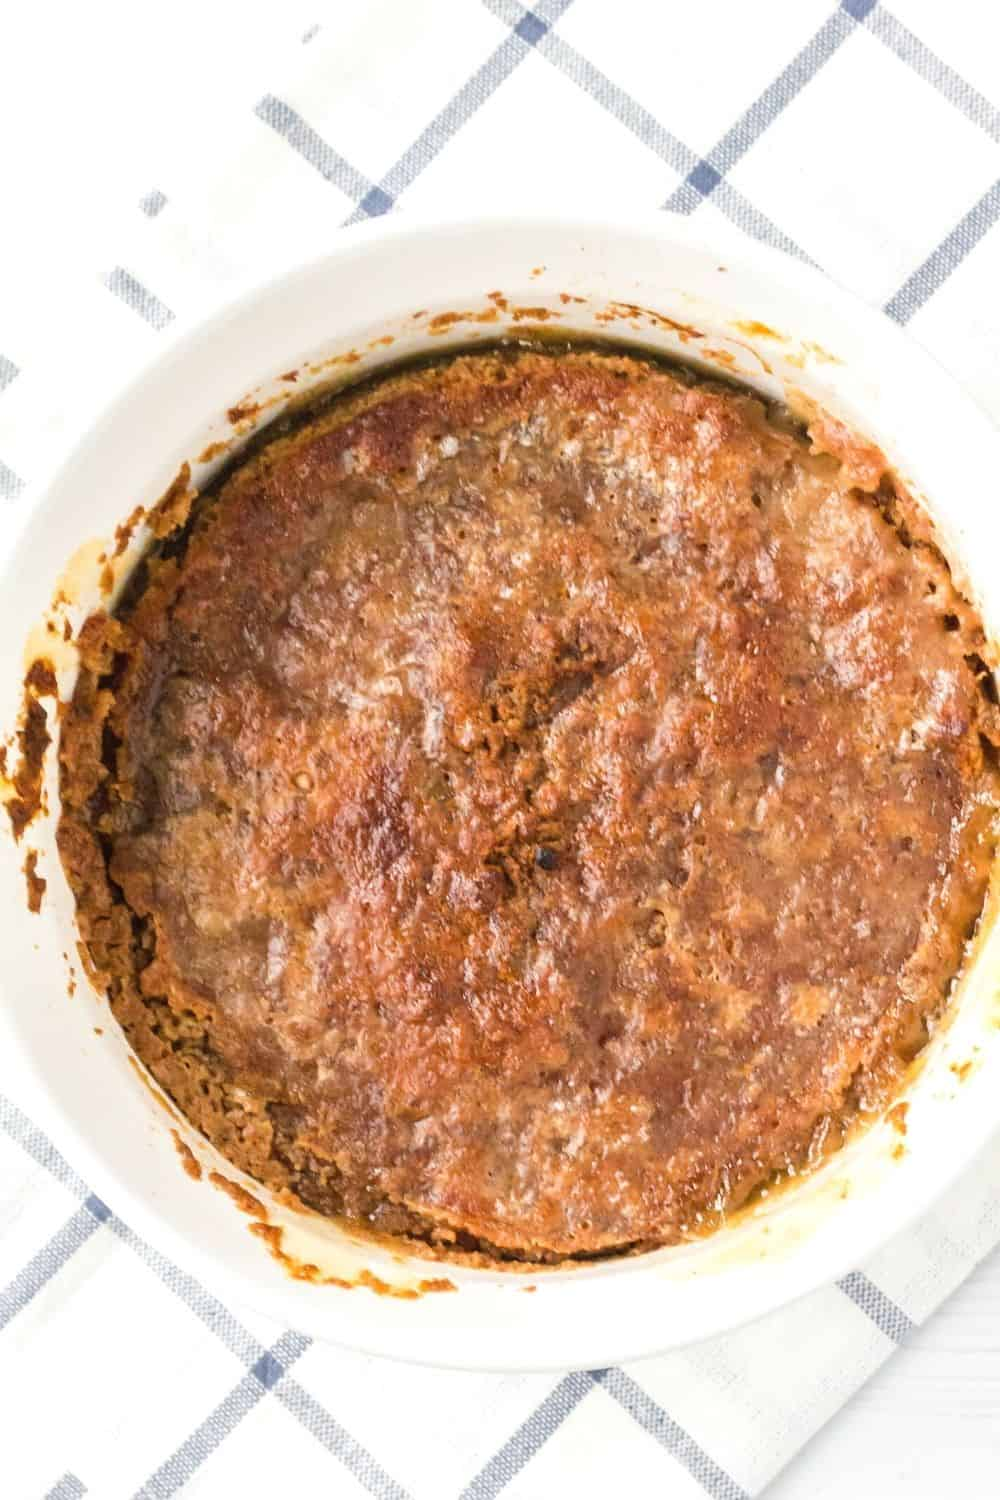 Instant Pot apple dump cake in a white baking dish, after having the top crisped up